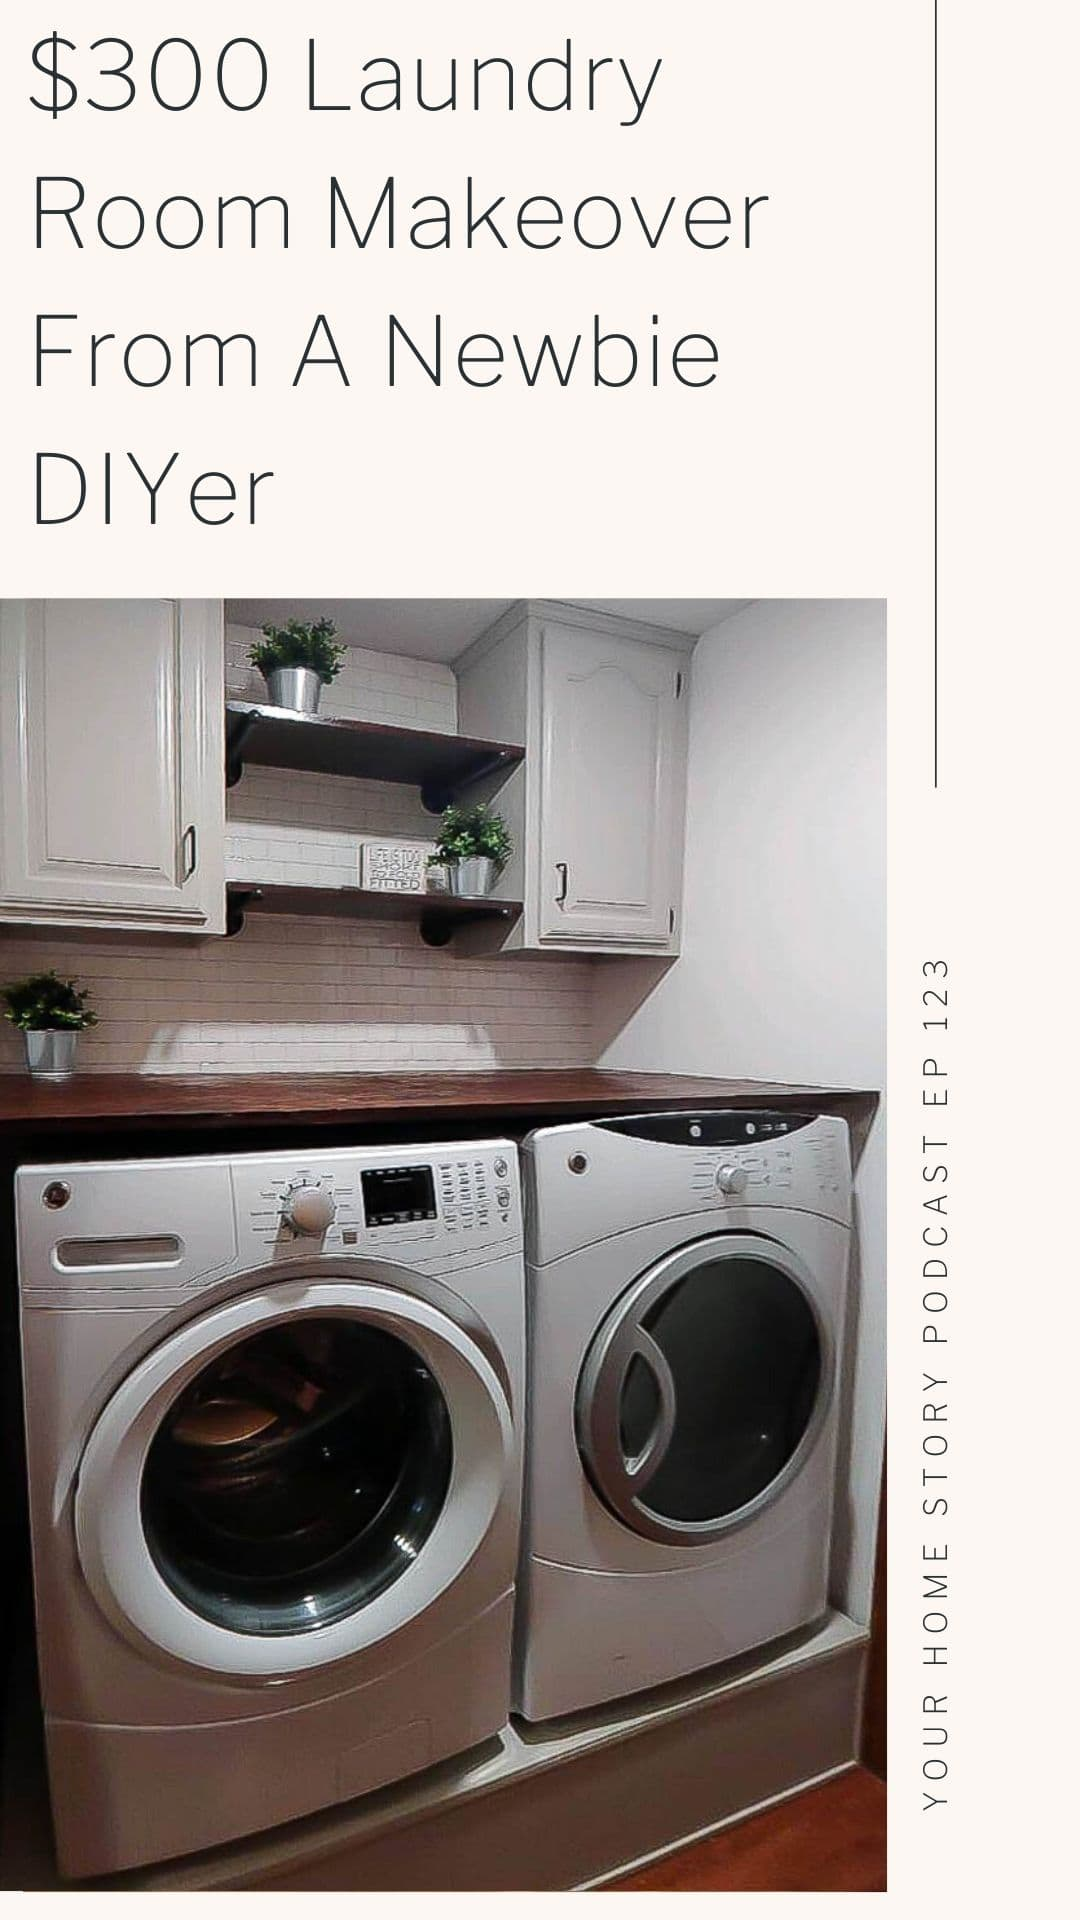 $300 laundry room makeover from a Newbie DIYer